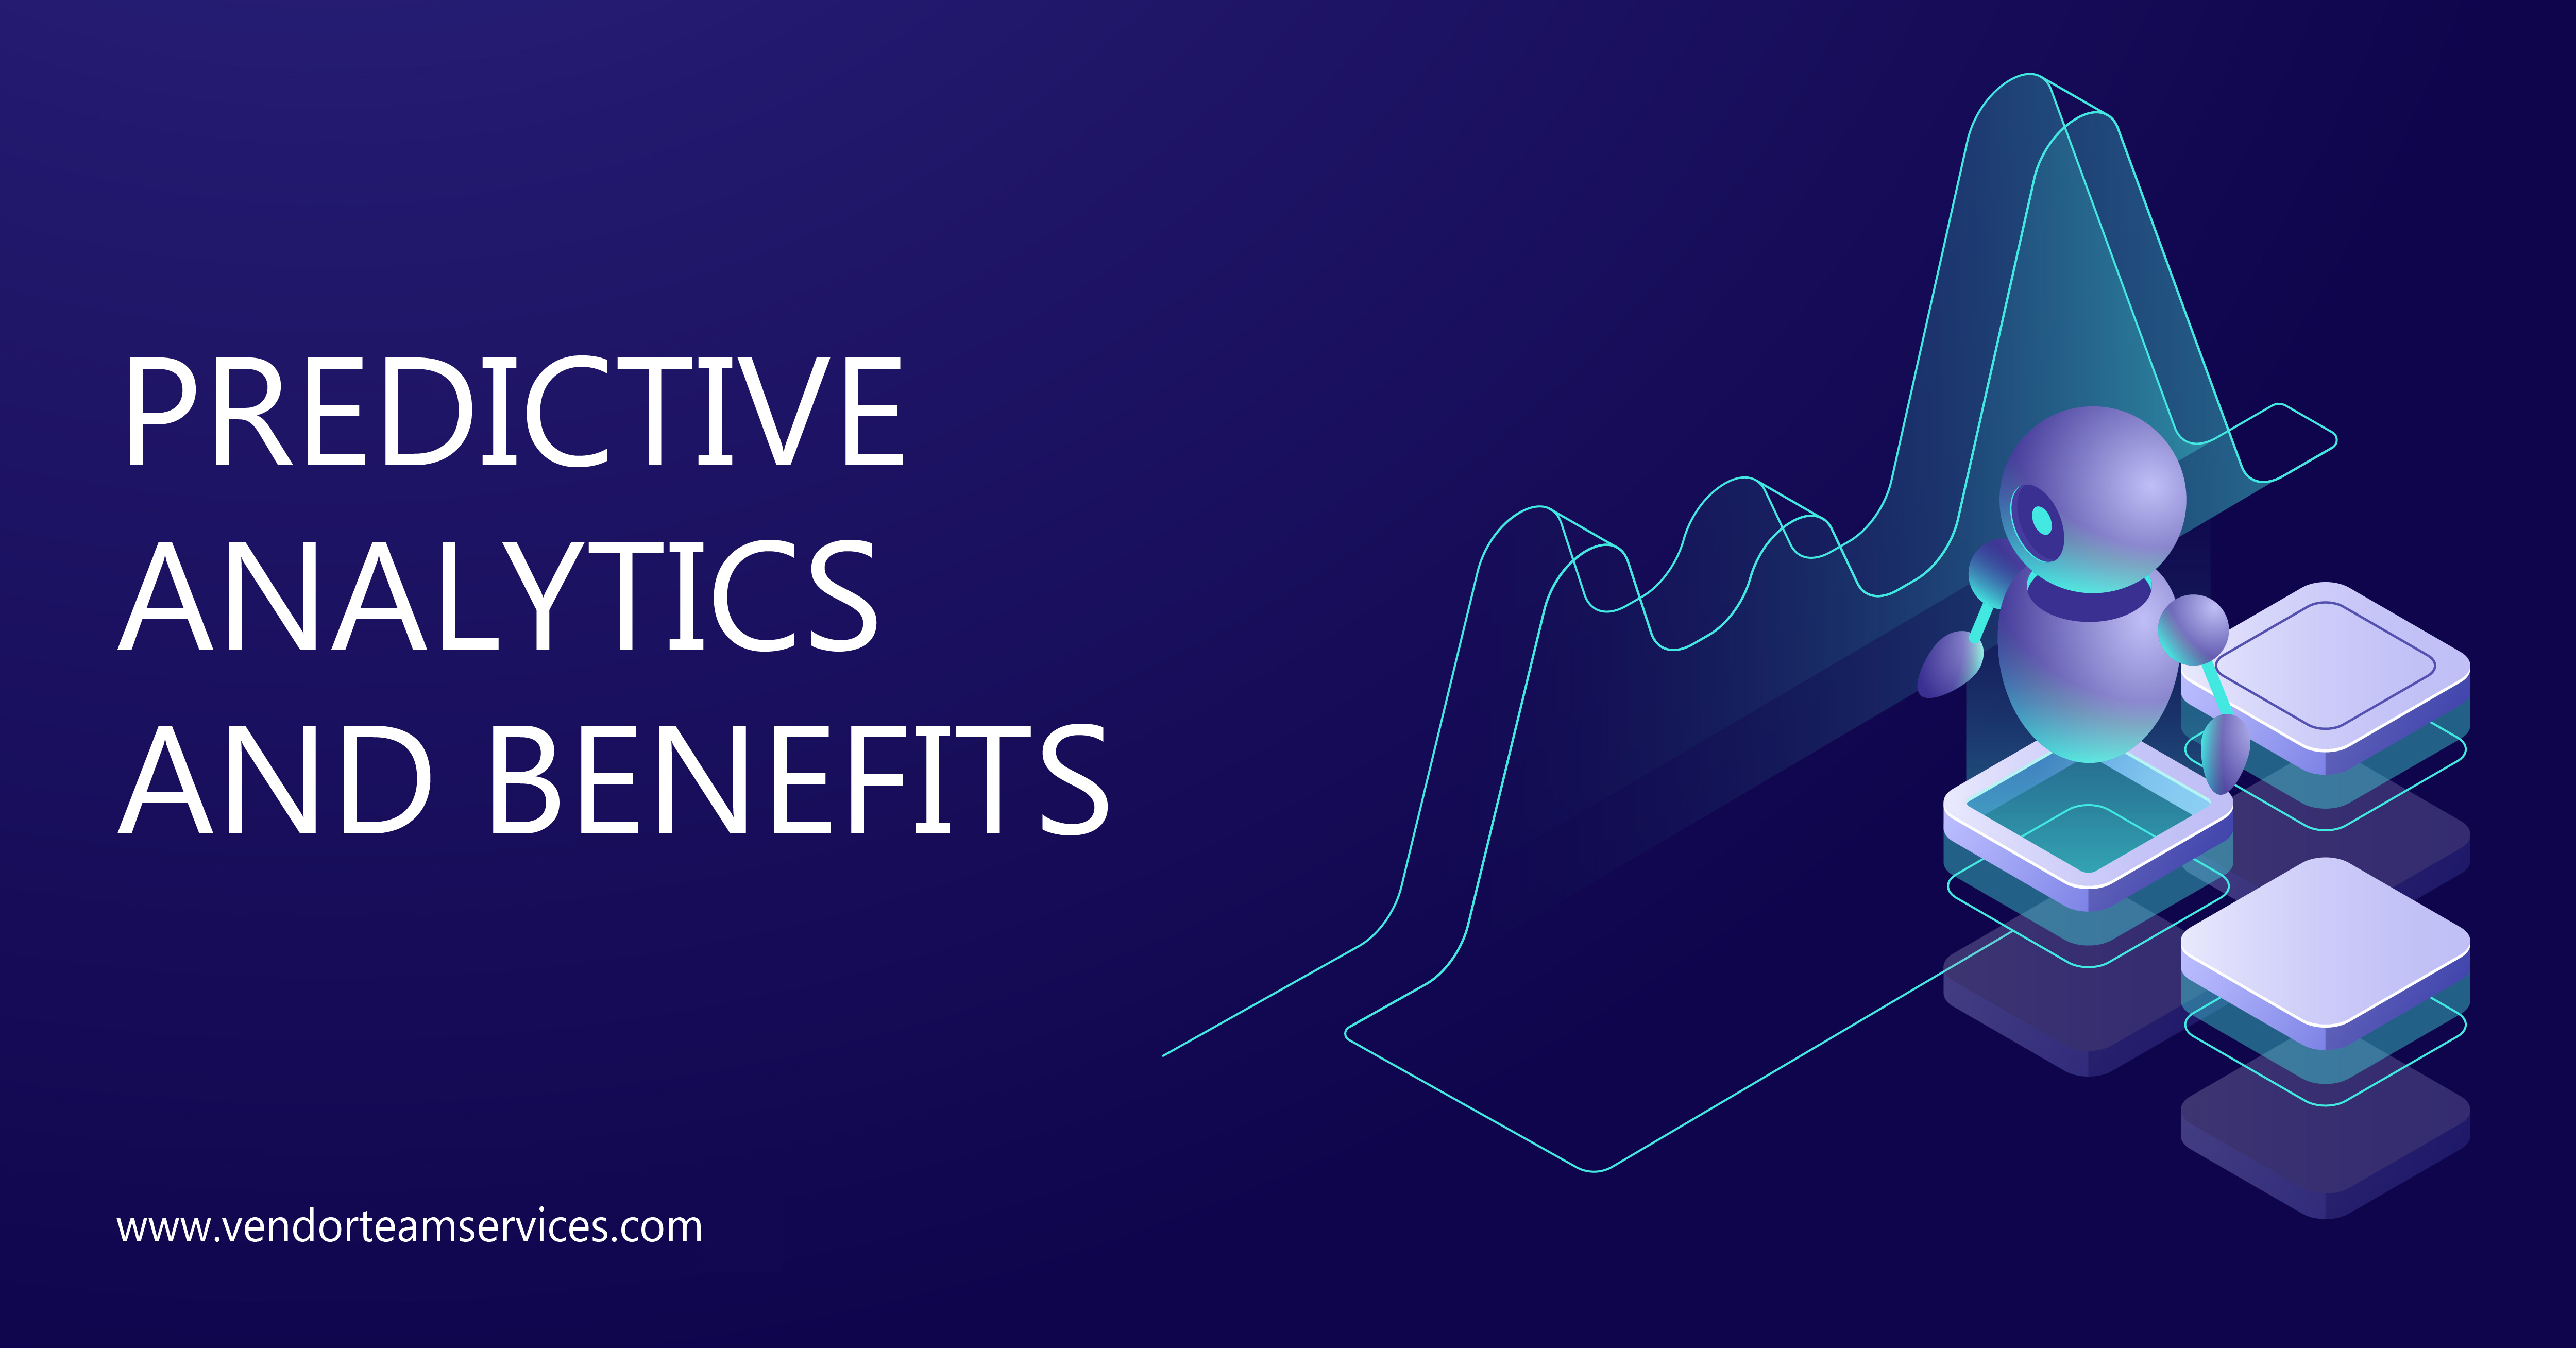 Predictive-analytics-and-benefits